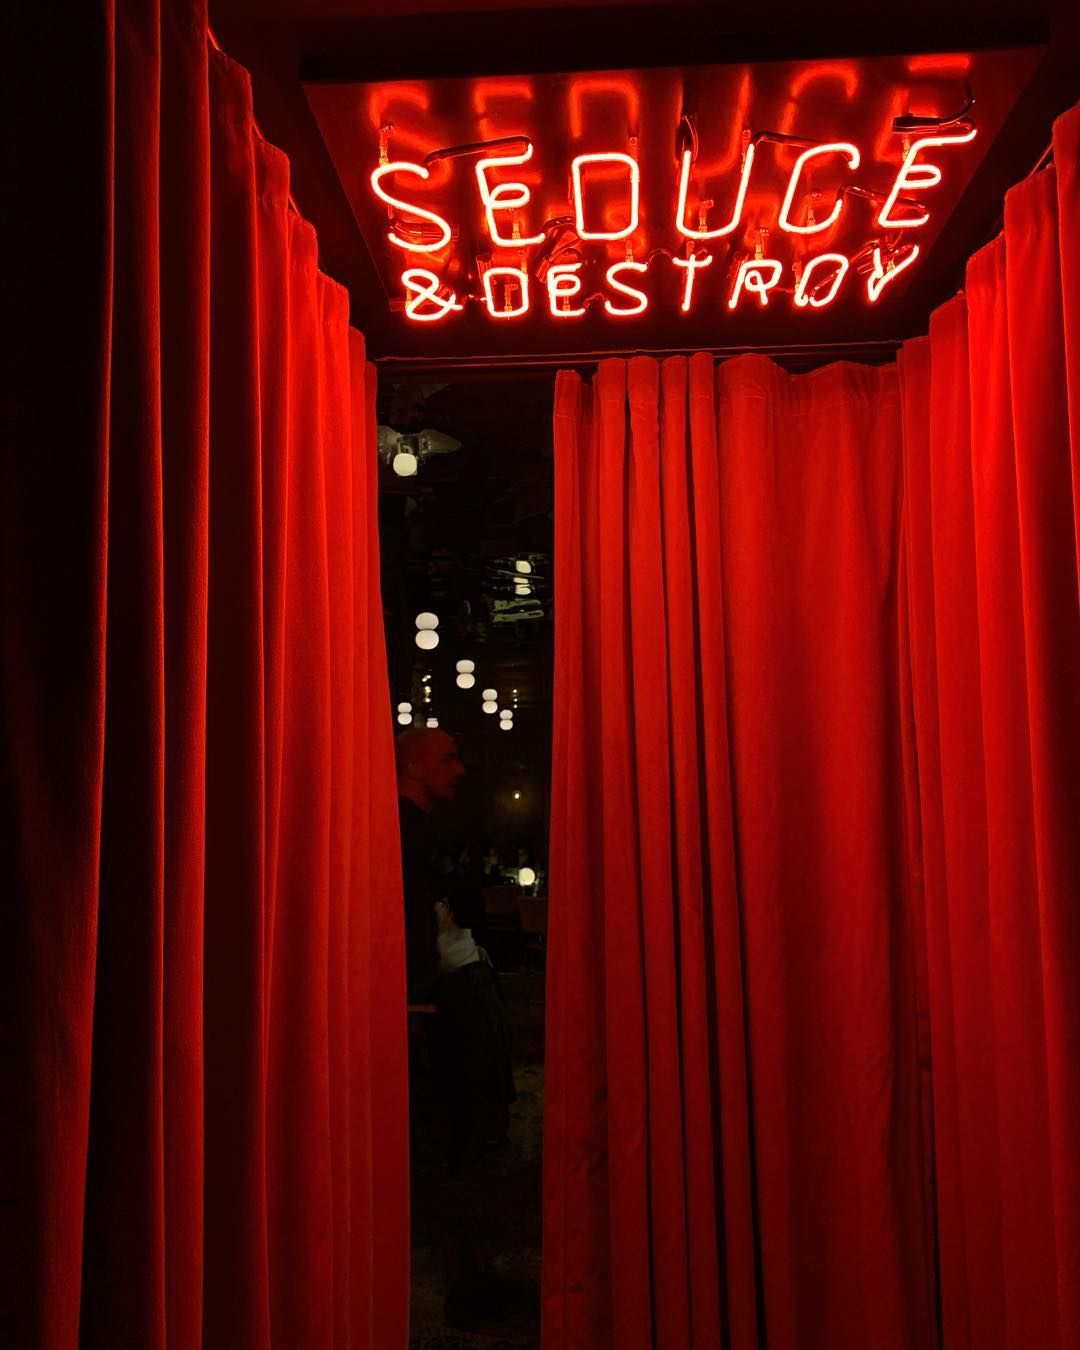 Pin by Caroline on RED Secret rooms, Instagram, Neon signs